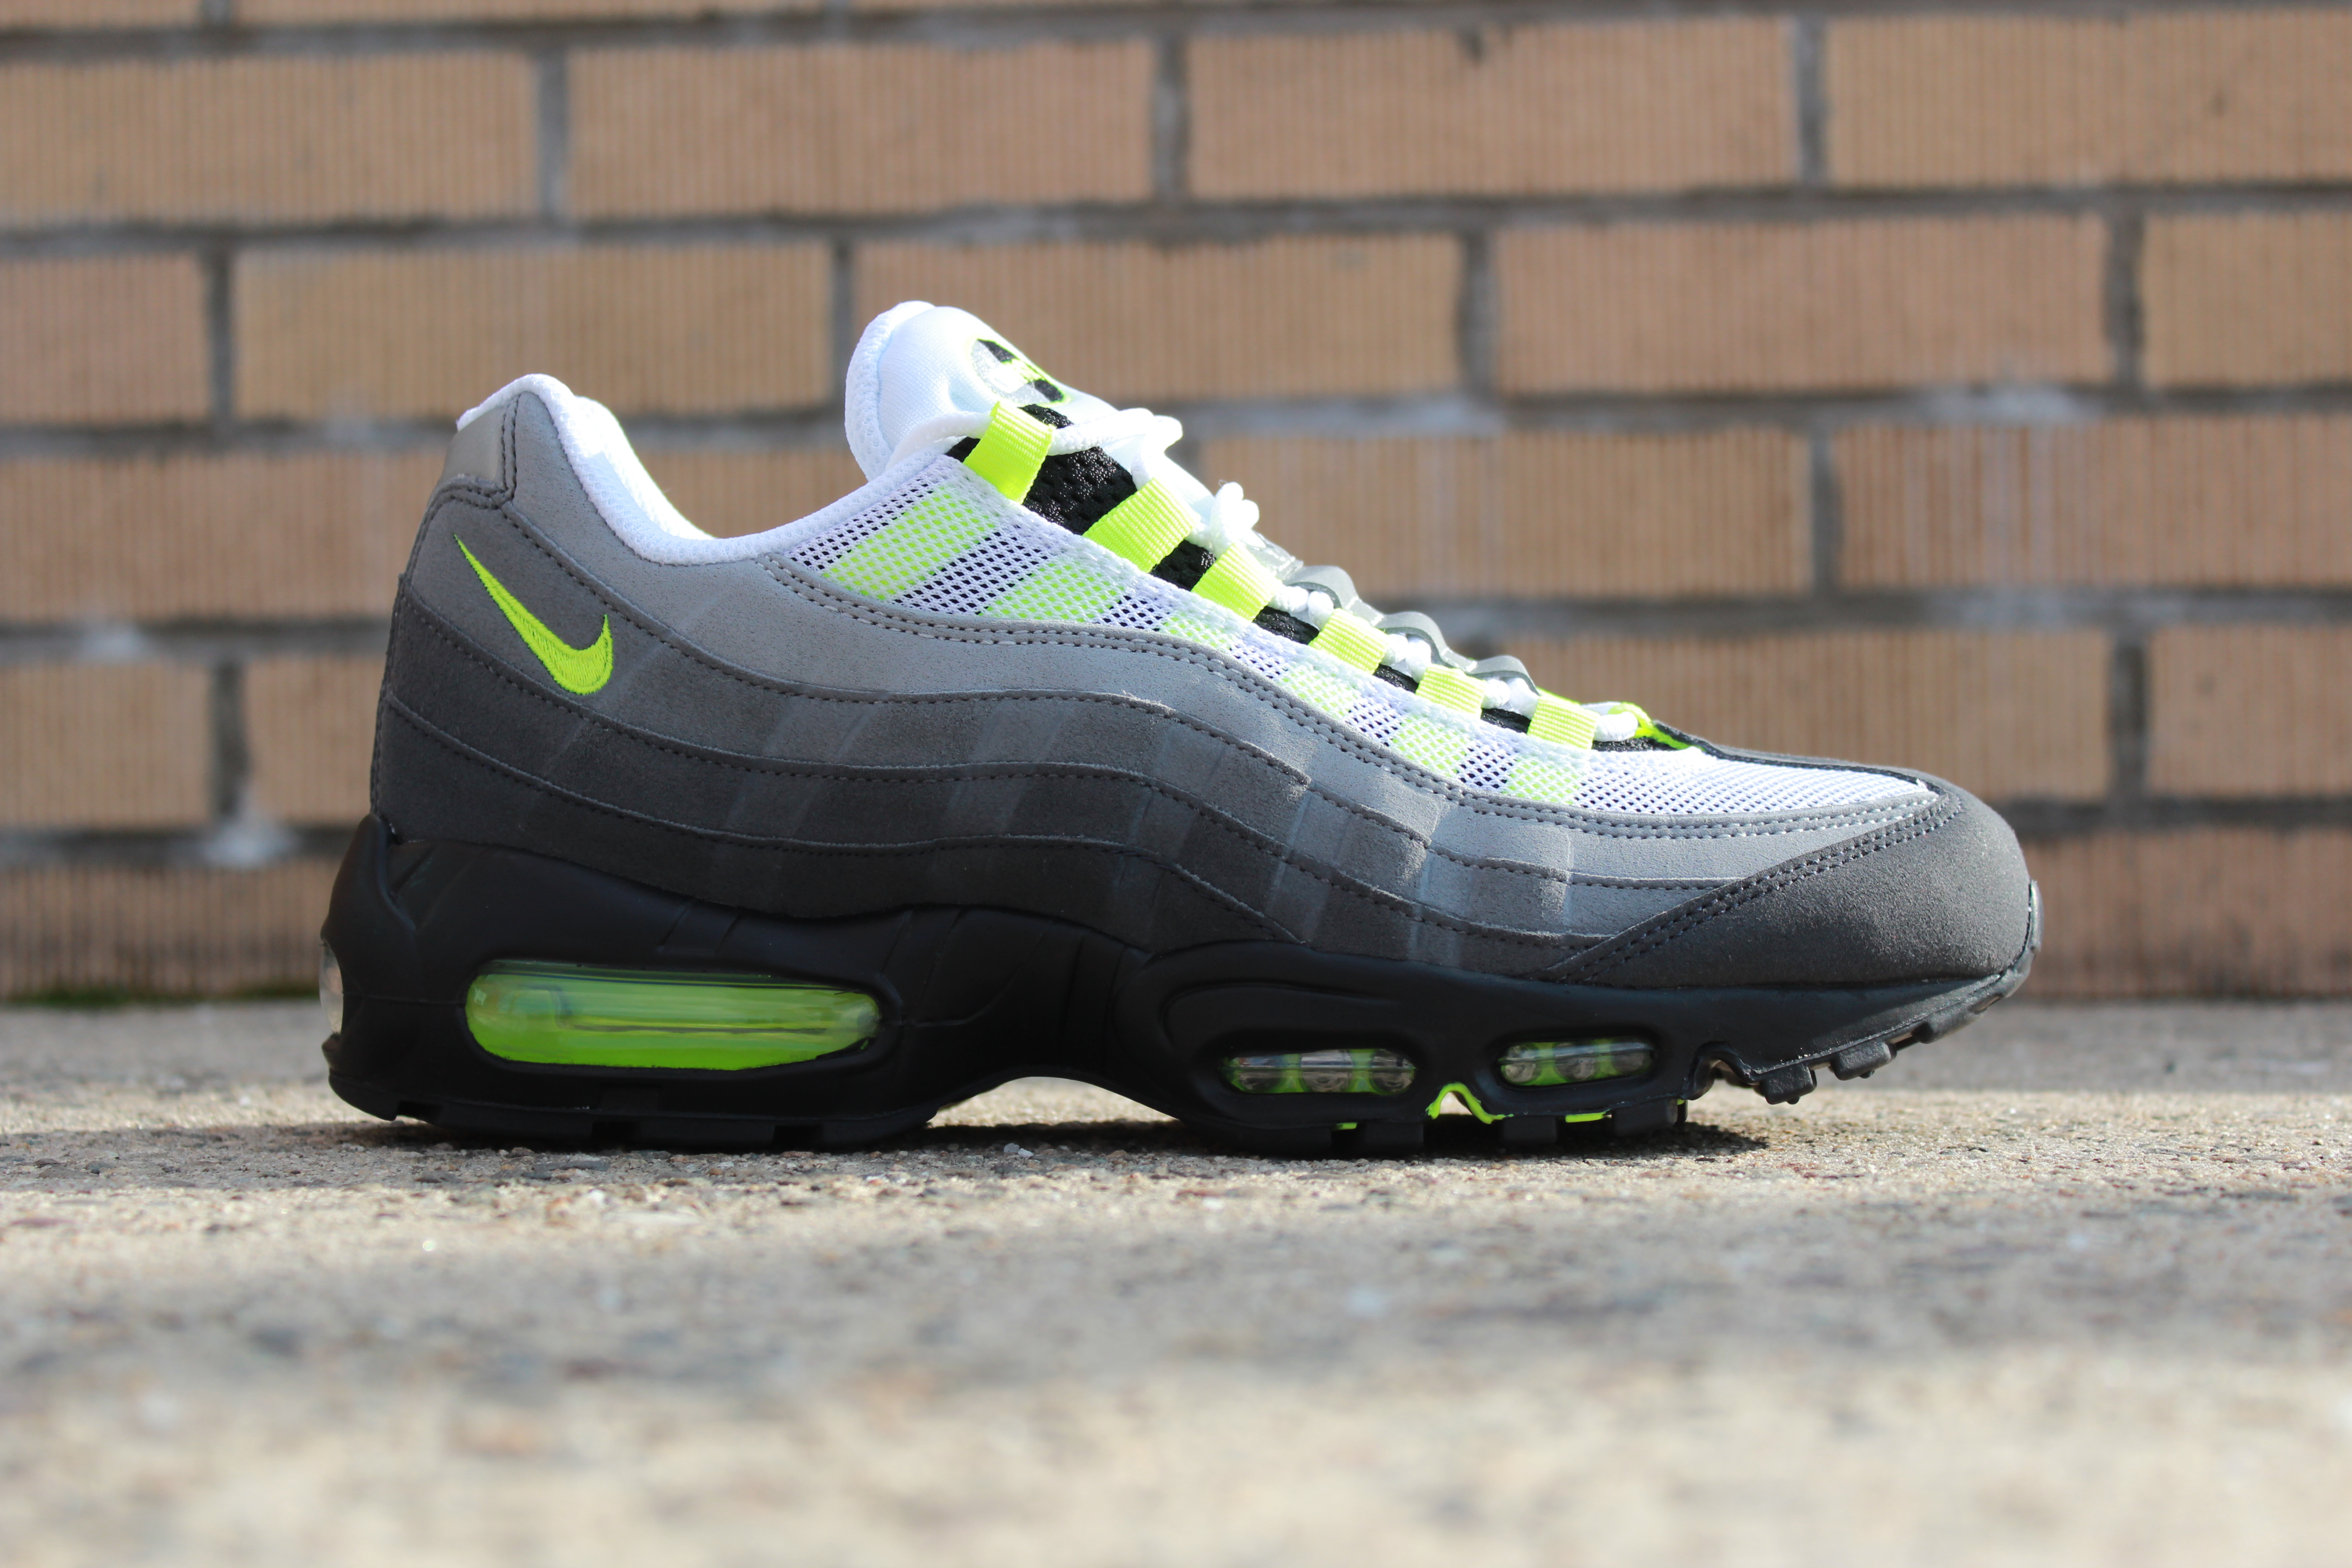 The Nike Air Max is one of the most popular 88c4d7c21